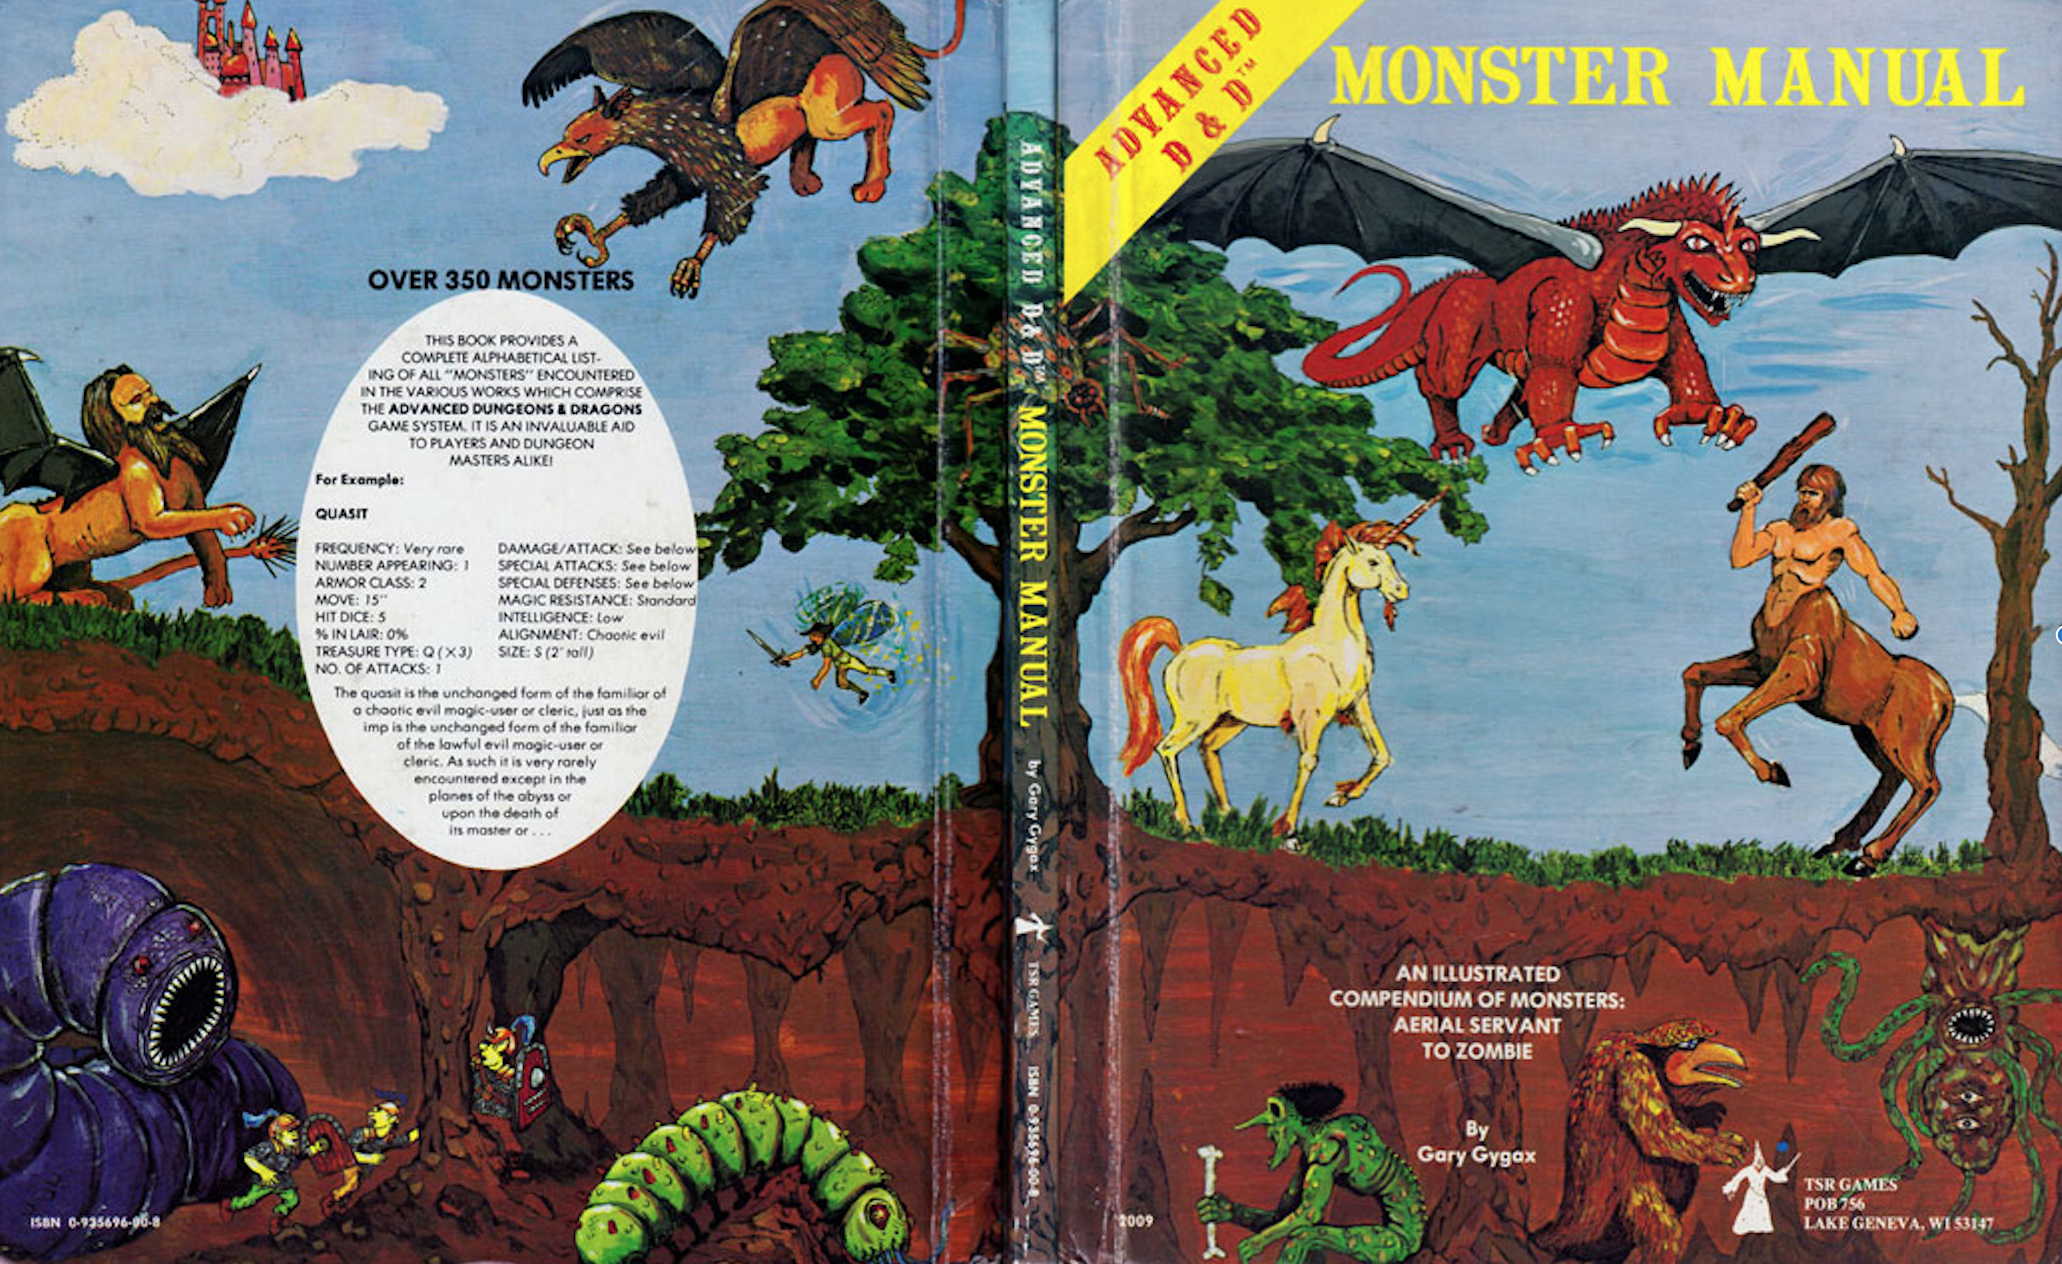 Advanced dungeons and dragons monster manual: gary gygax.